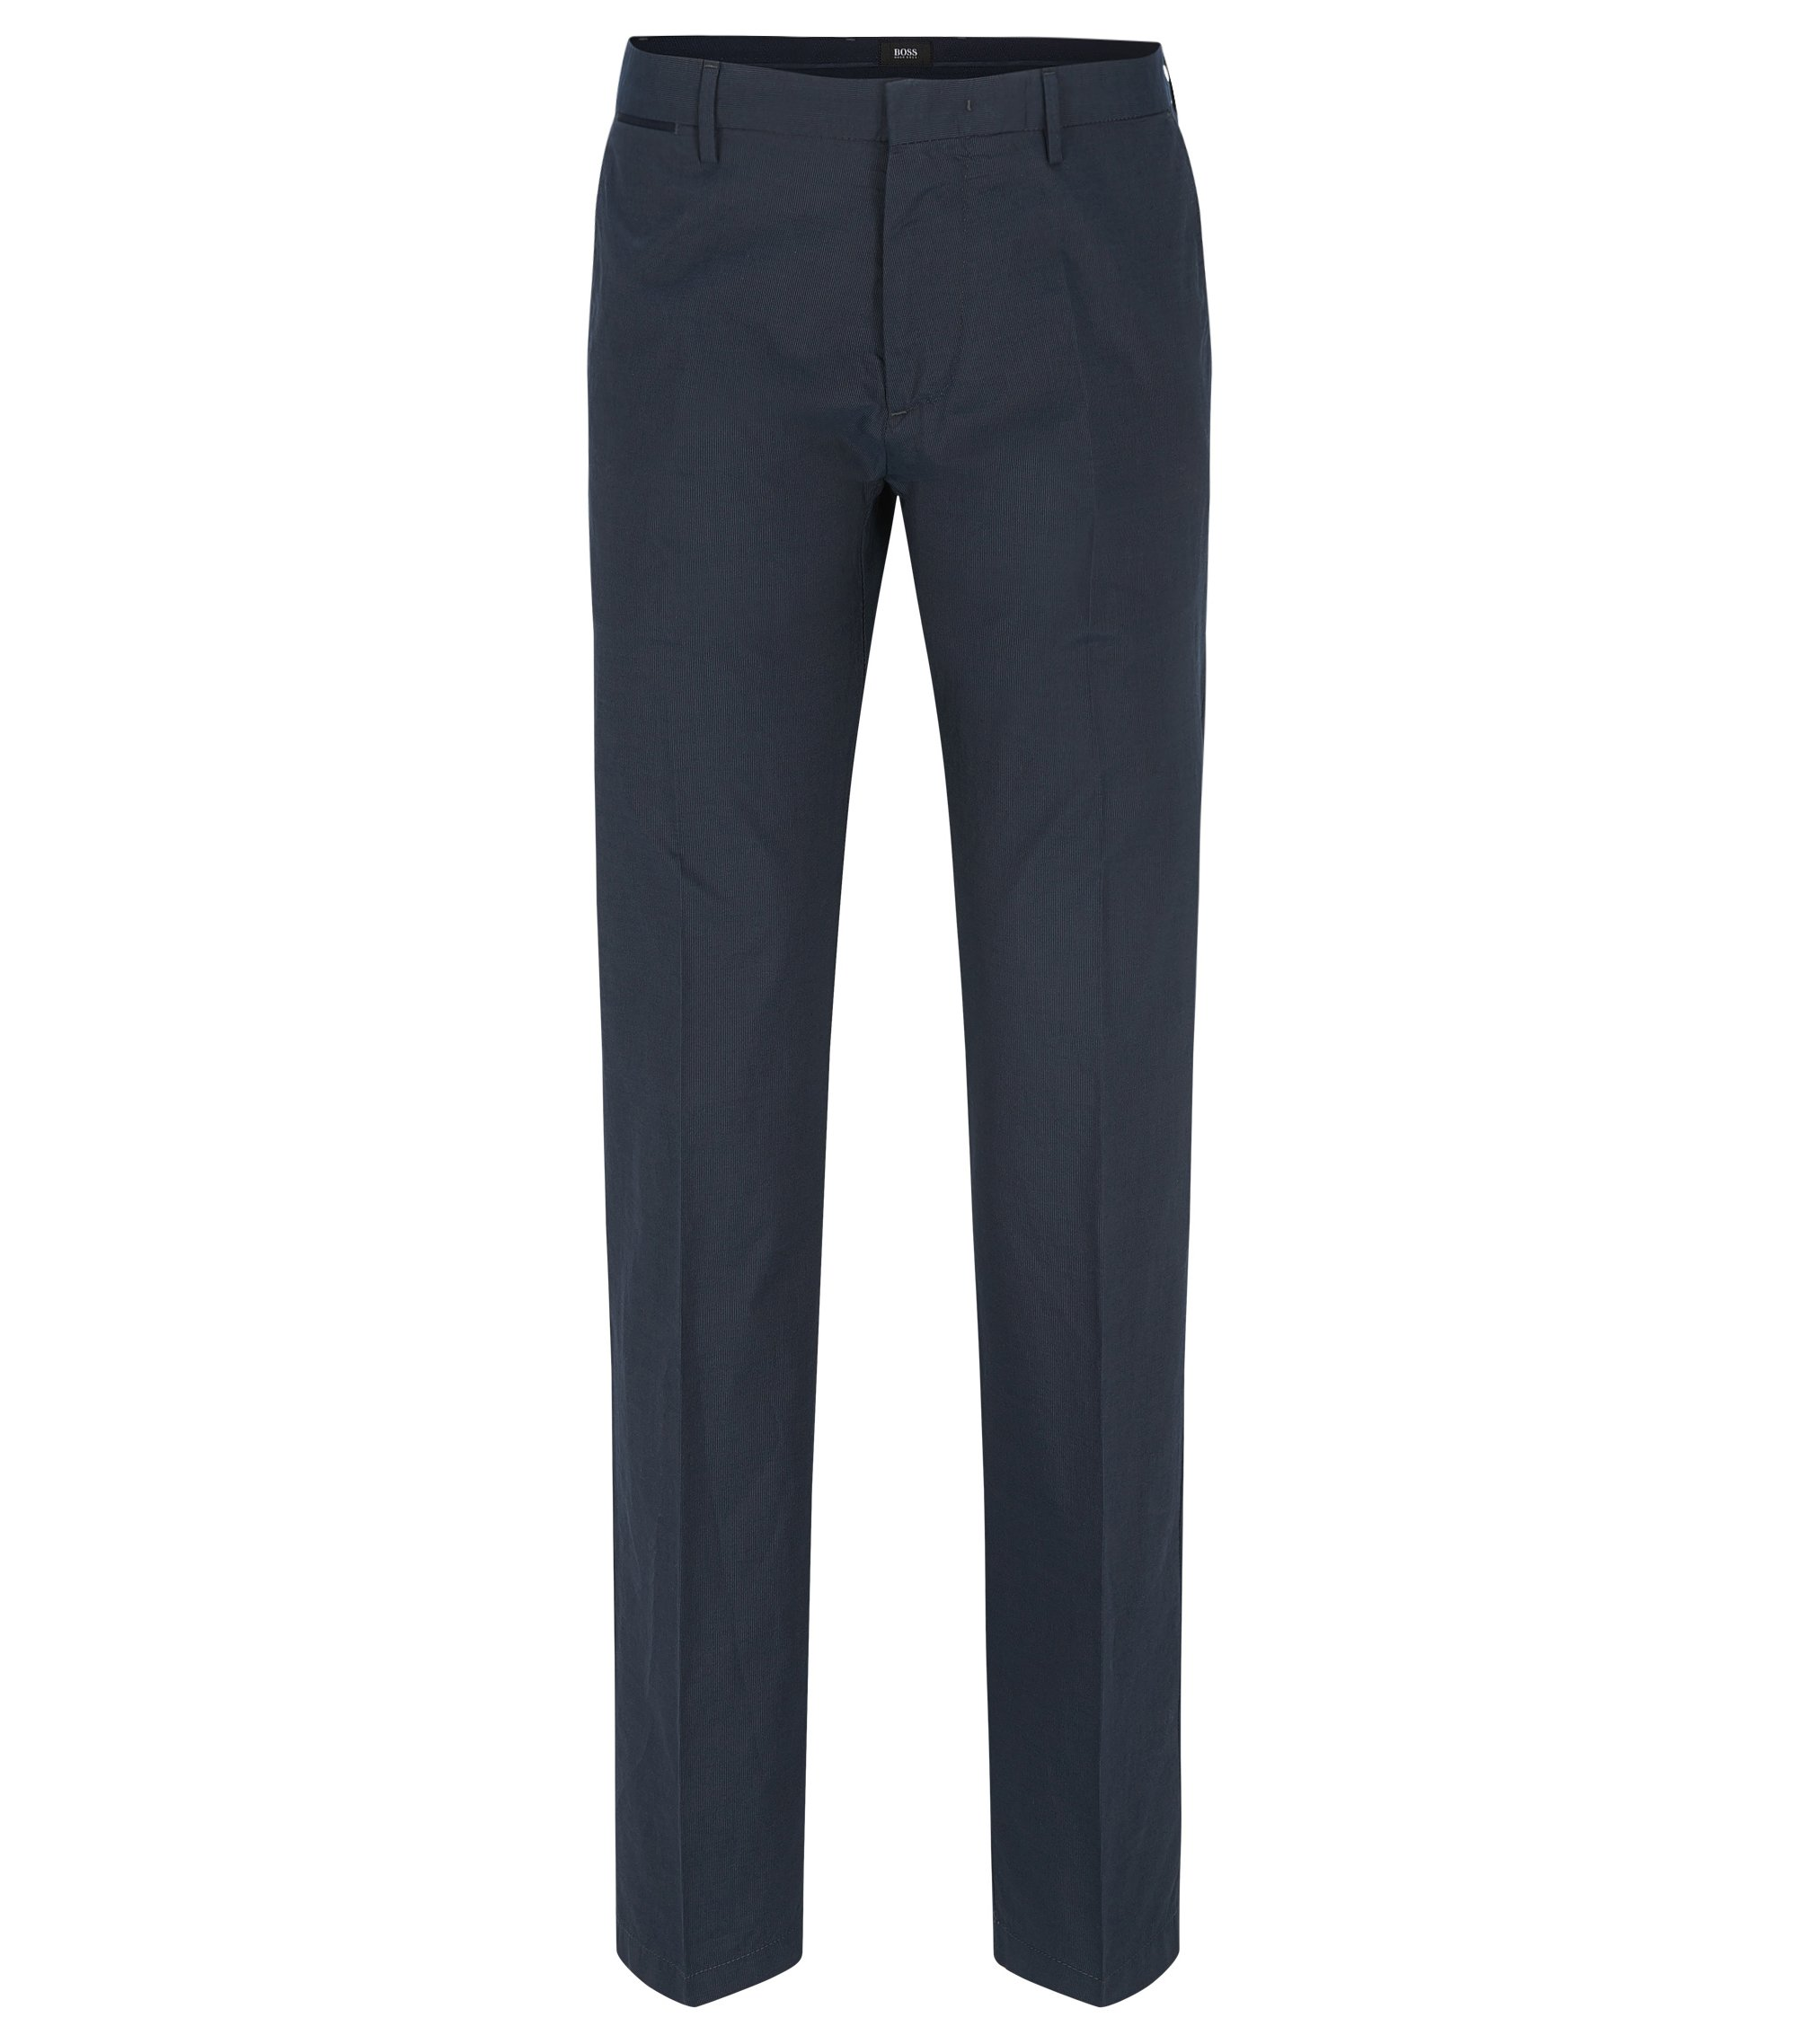 Cotton-Silk Pant, Regular Fit | Crigan Luxe W, Dark Blue